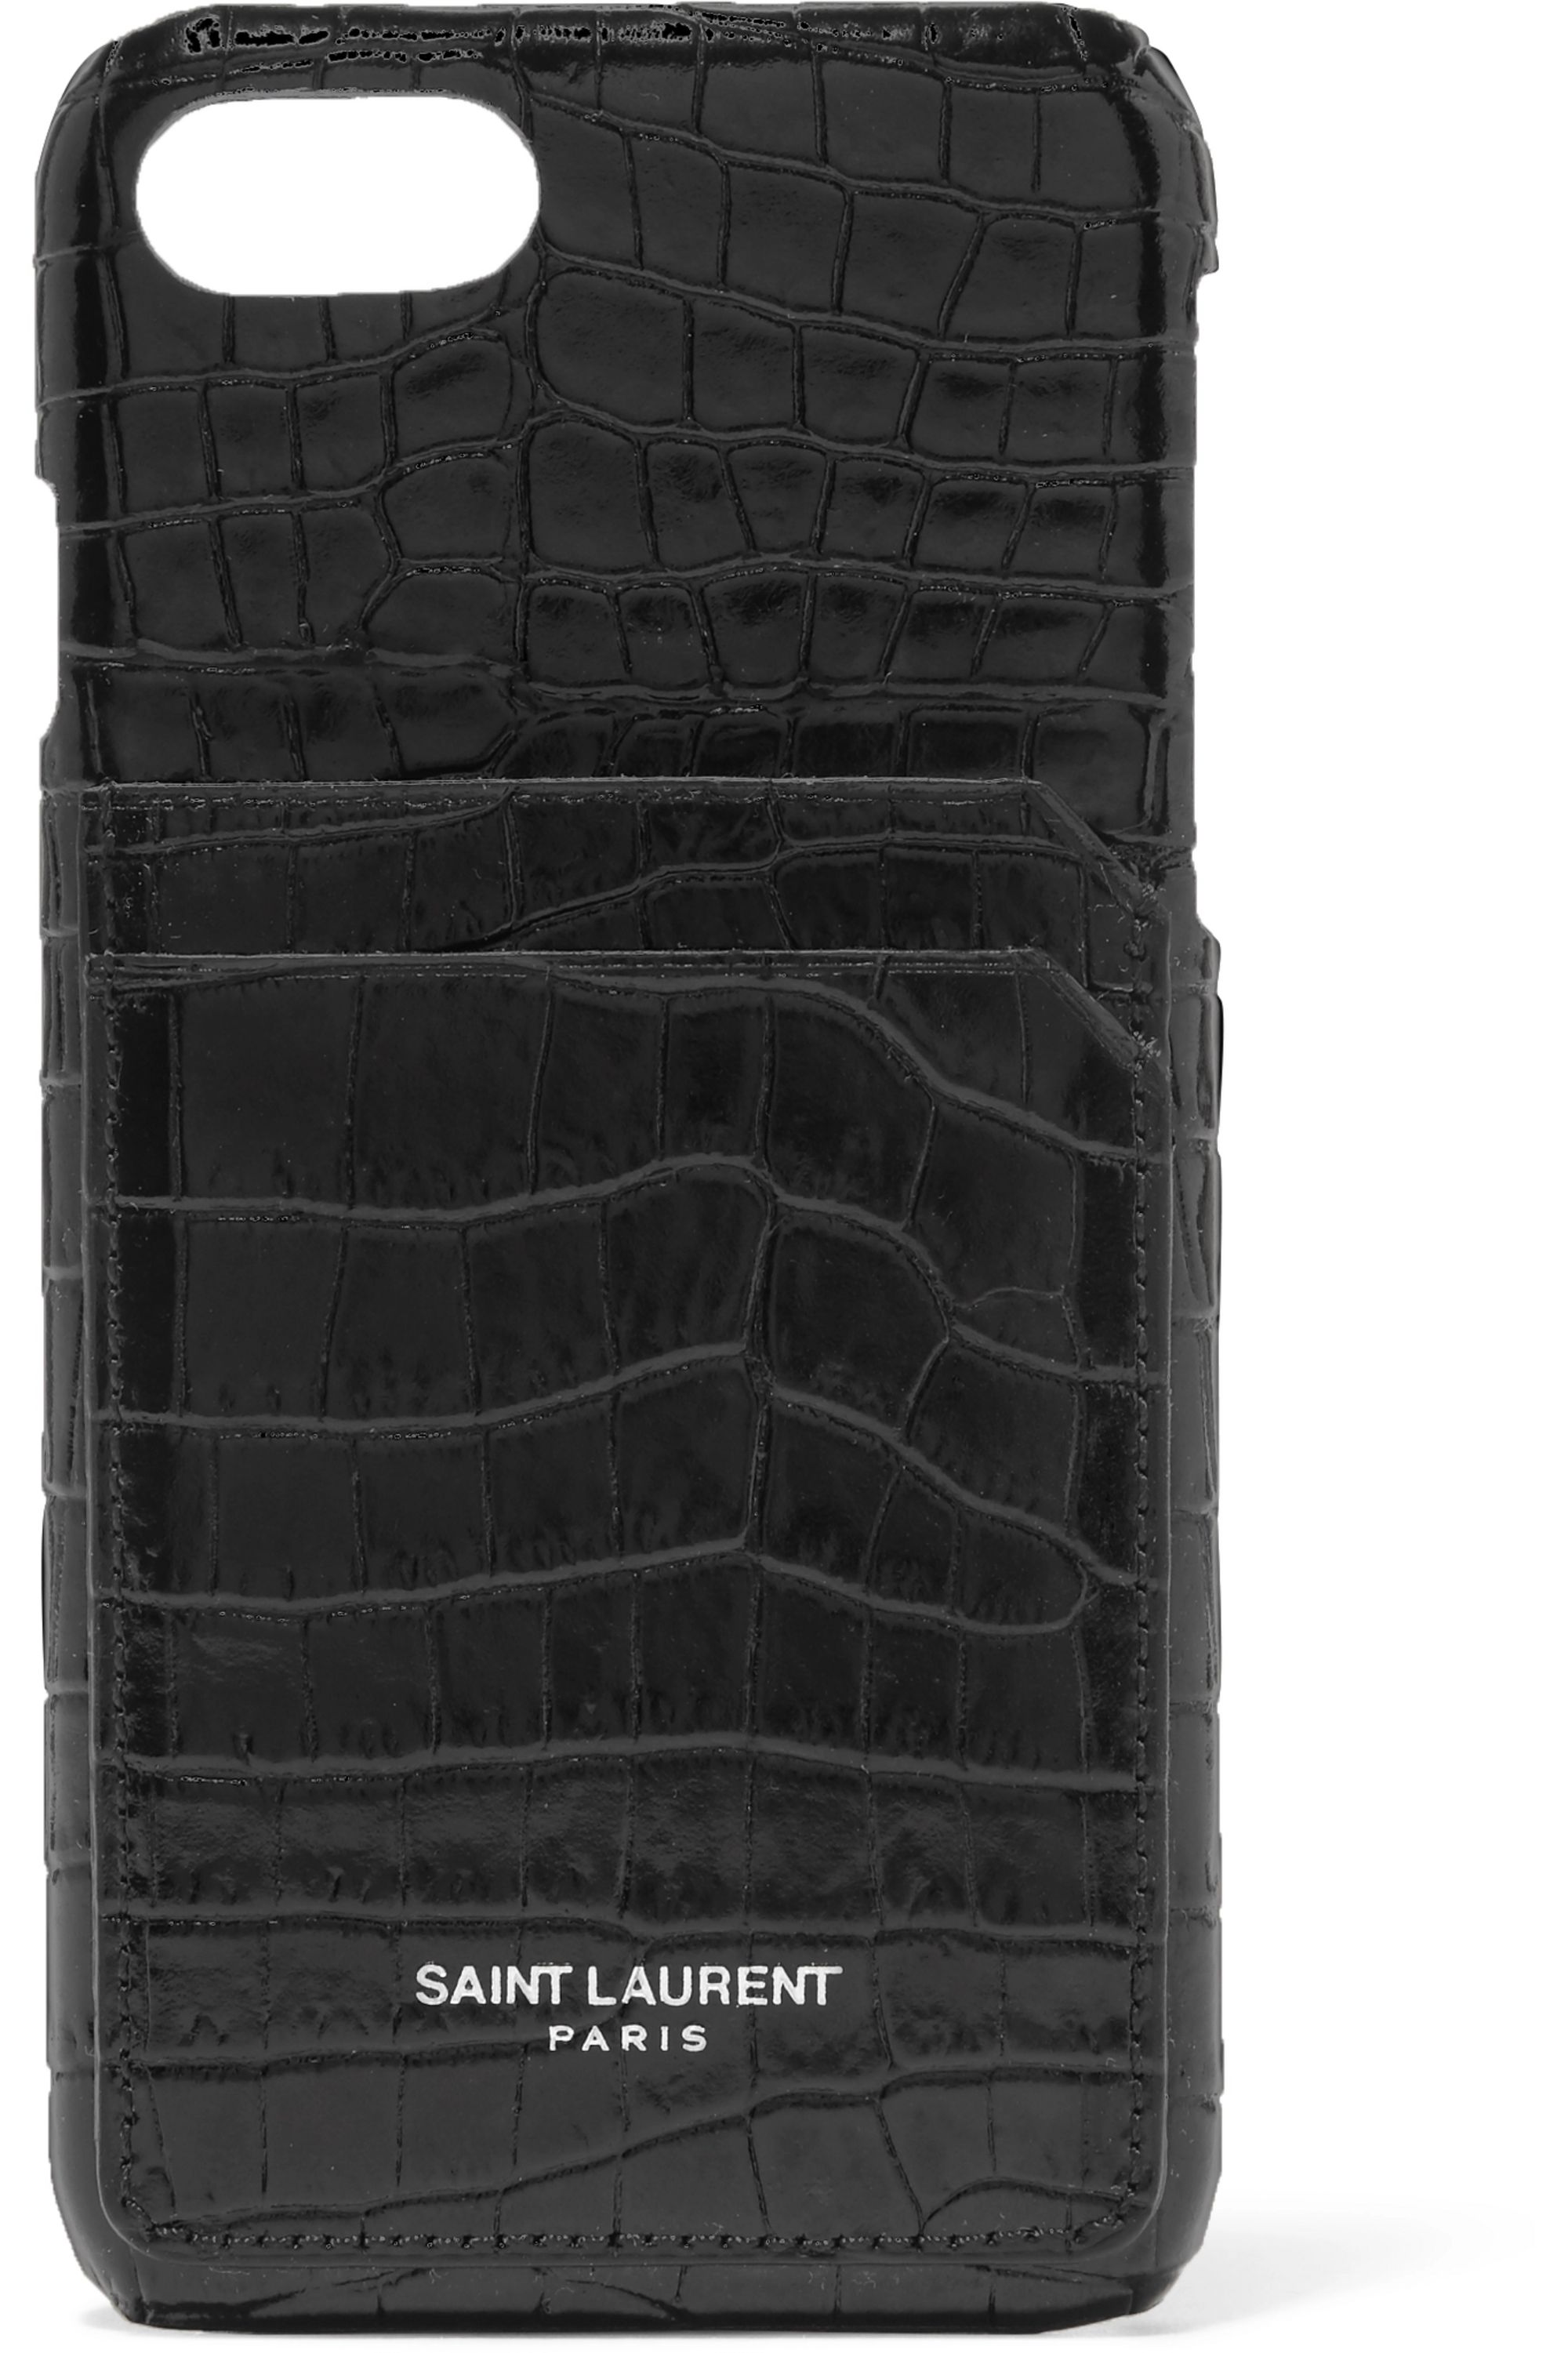 SAINT LAURENT Croc-effect leather iPhone 8 case